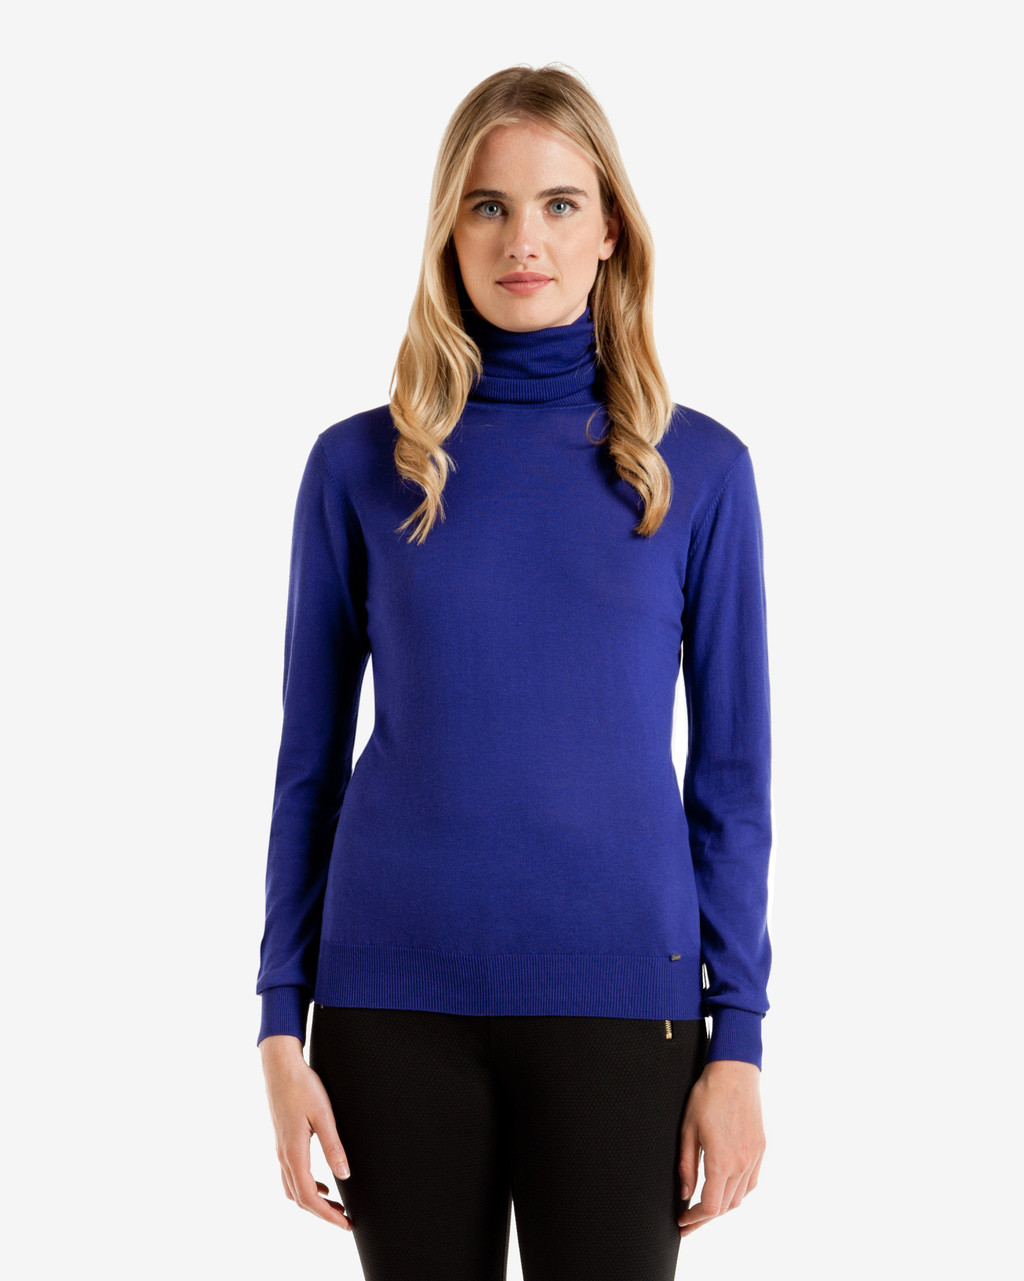 Silk Blend Roll Neck Jumper Blue - pattern: plain; neckline: roll neck; style: standard; predominant colour: royal blue; occasions: casual, creative work; length: standard; fibres: silk - mix; fit: standard fit; sleeve length: long sleeve; sleeve style: standard; texture group: knits/crochet; pattern type: knitted - fine stitch; season: a/w 2016; wardrobe: highlight